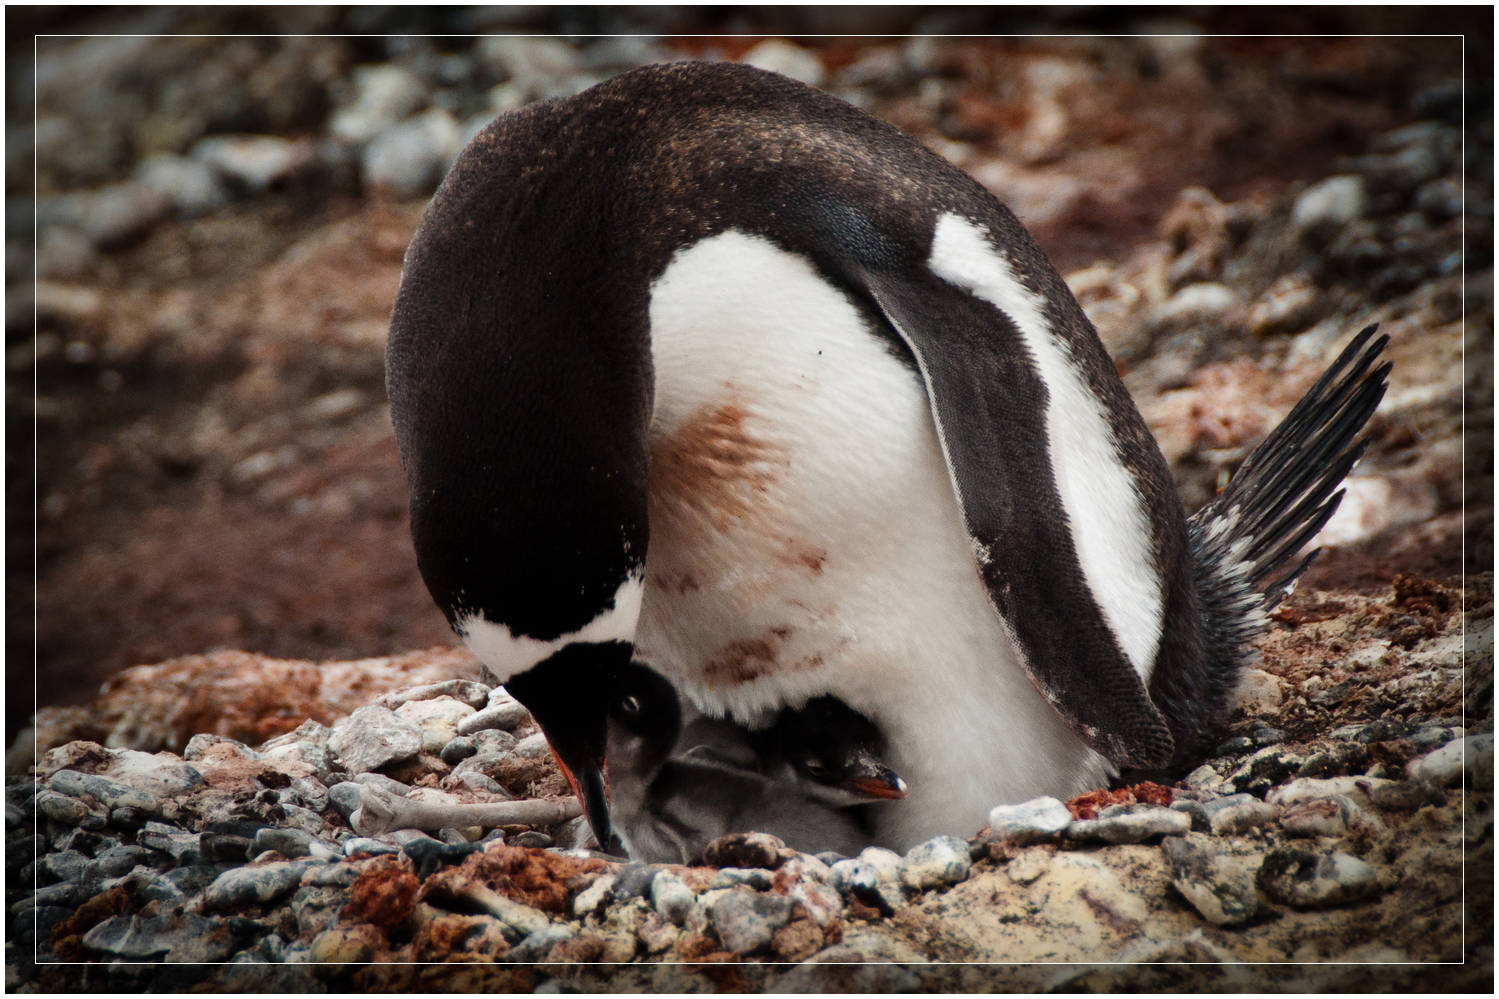 Gentoo penguin caring for baby. (c) Dustin Main 2010